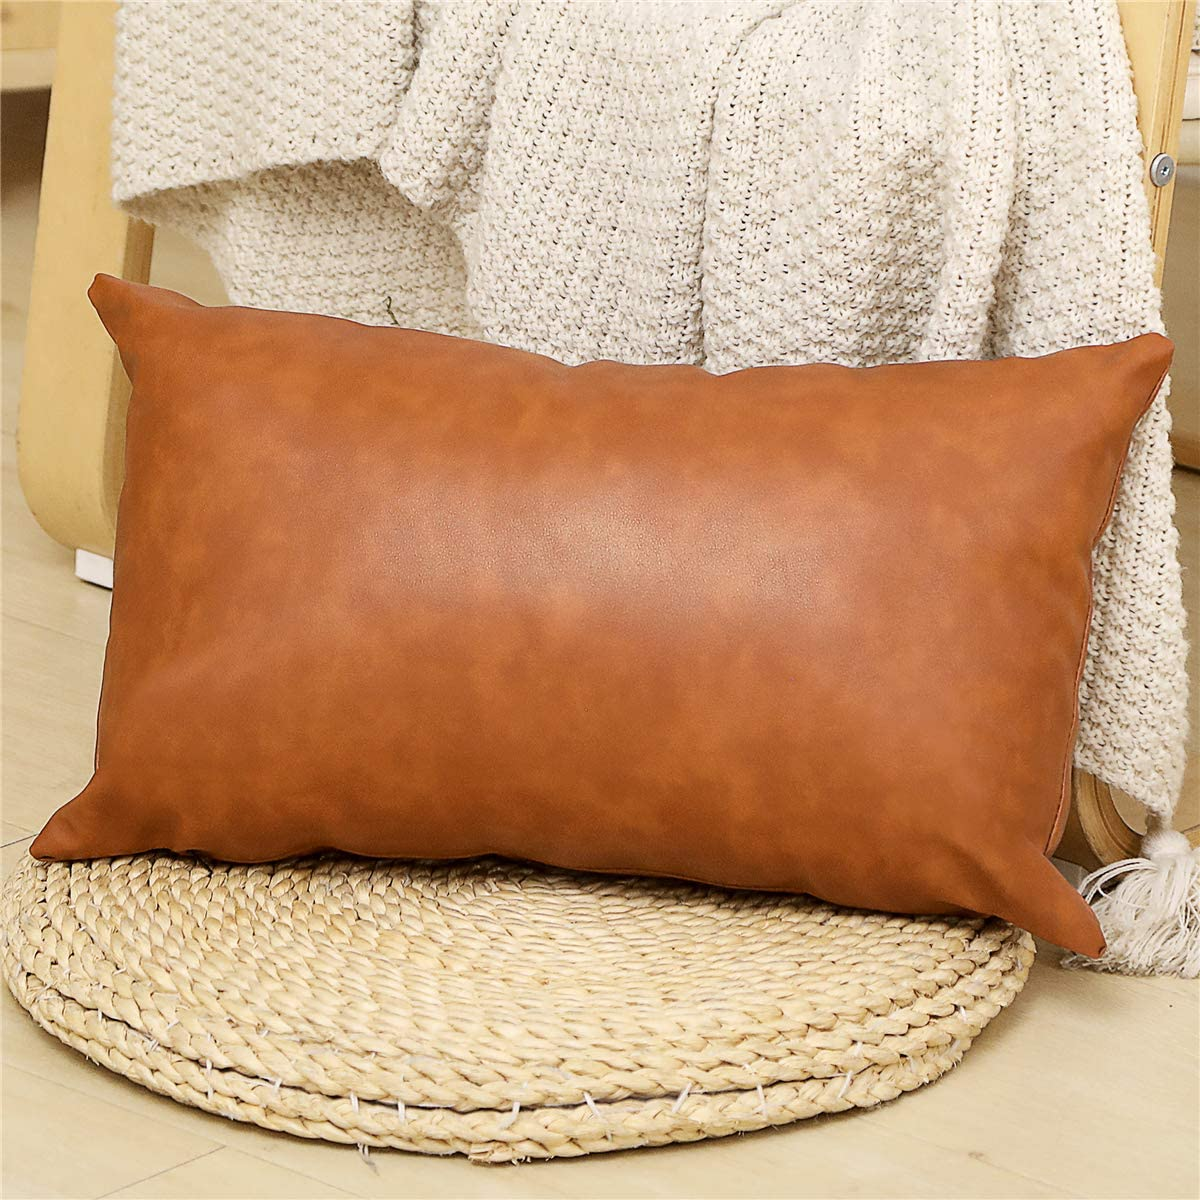 Amazon Com Seeksee Faux Leather Lumbar Pillow Cover 12x20 Inch Modern Country Style Decorative Lumbar Pillow For Bedroom Living Room Sofa Brown Accent Pillows Home Kitchen